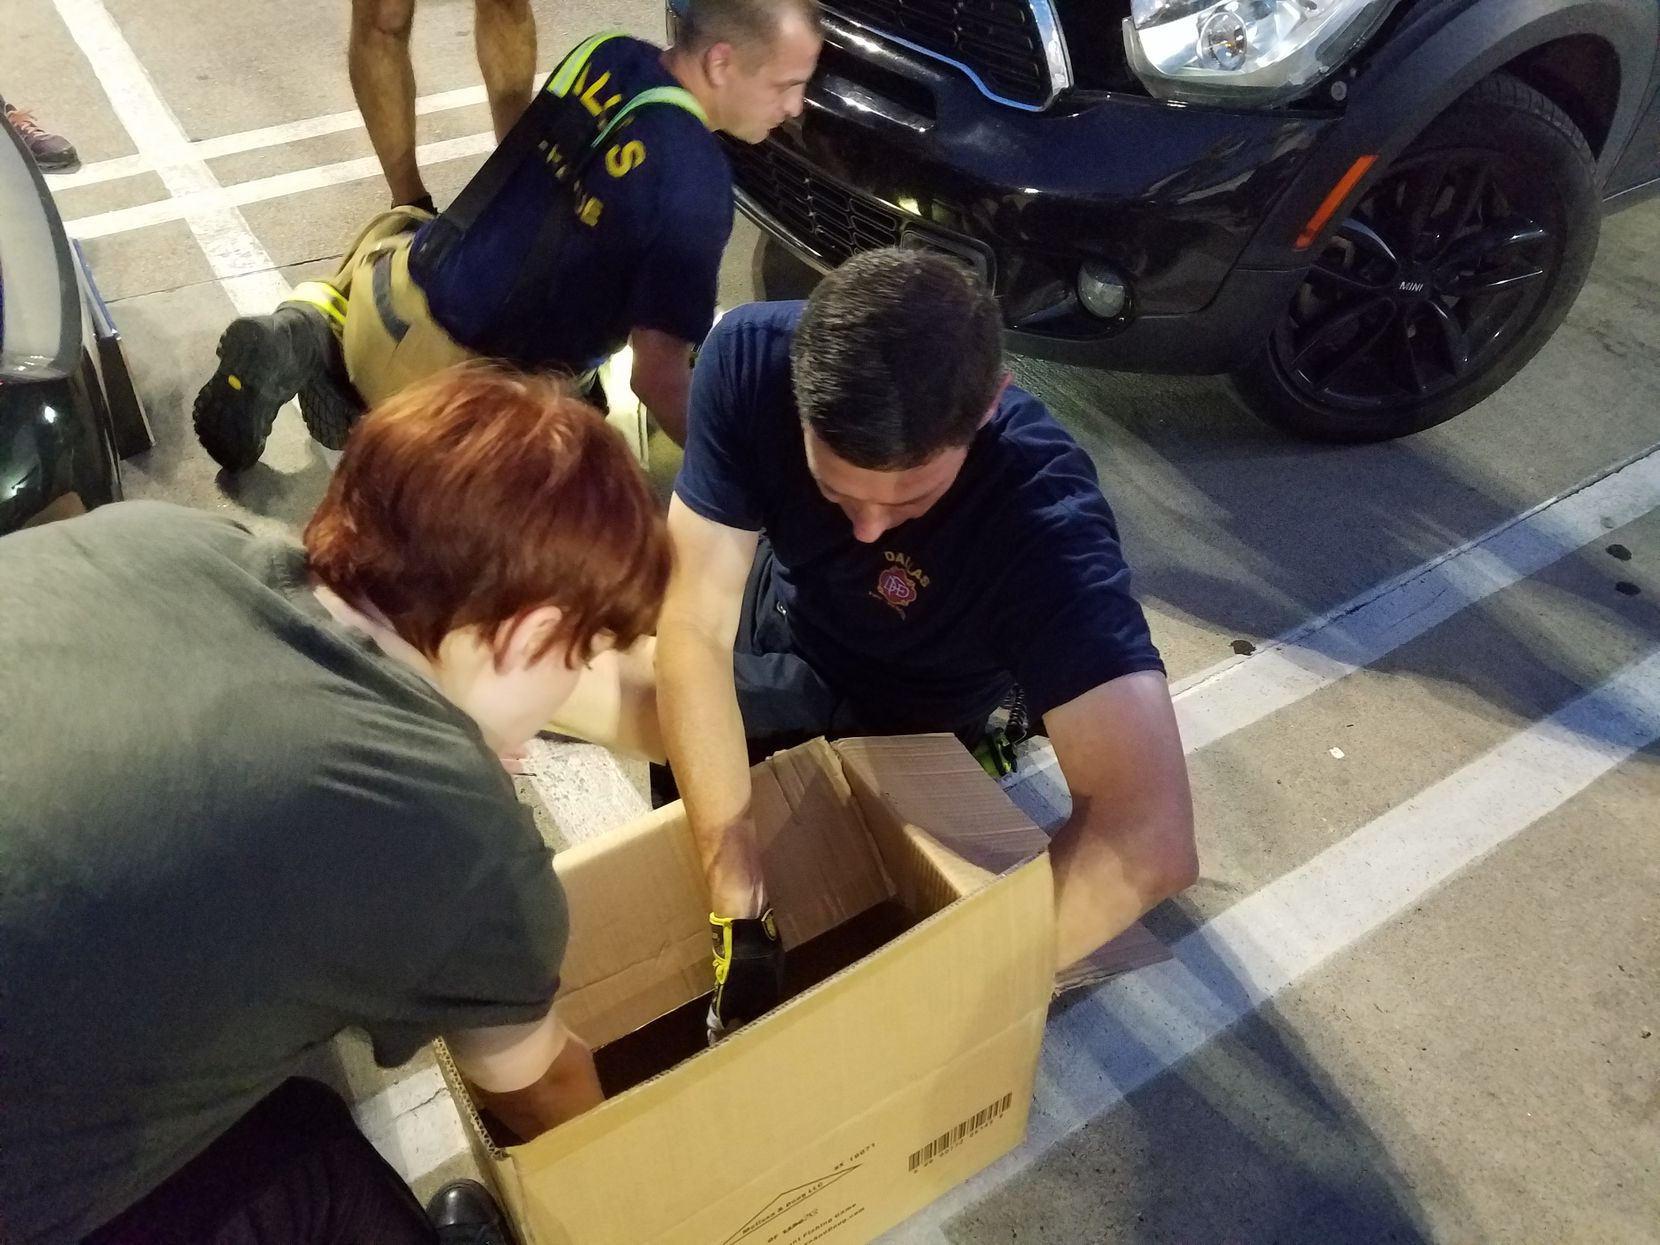 A Dallas Fire-Rescue team helped rescue a cat from a car in East Dallas Wednesday night.